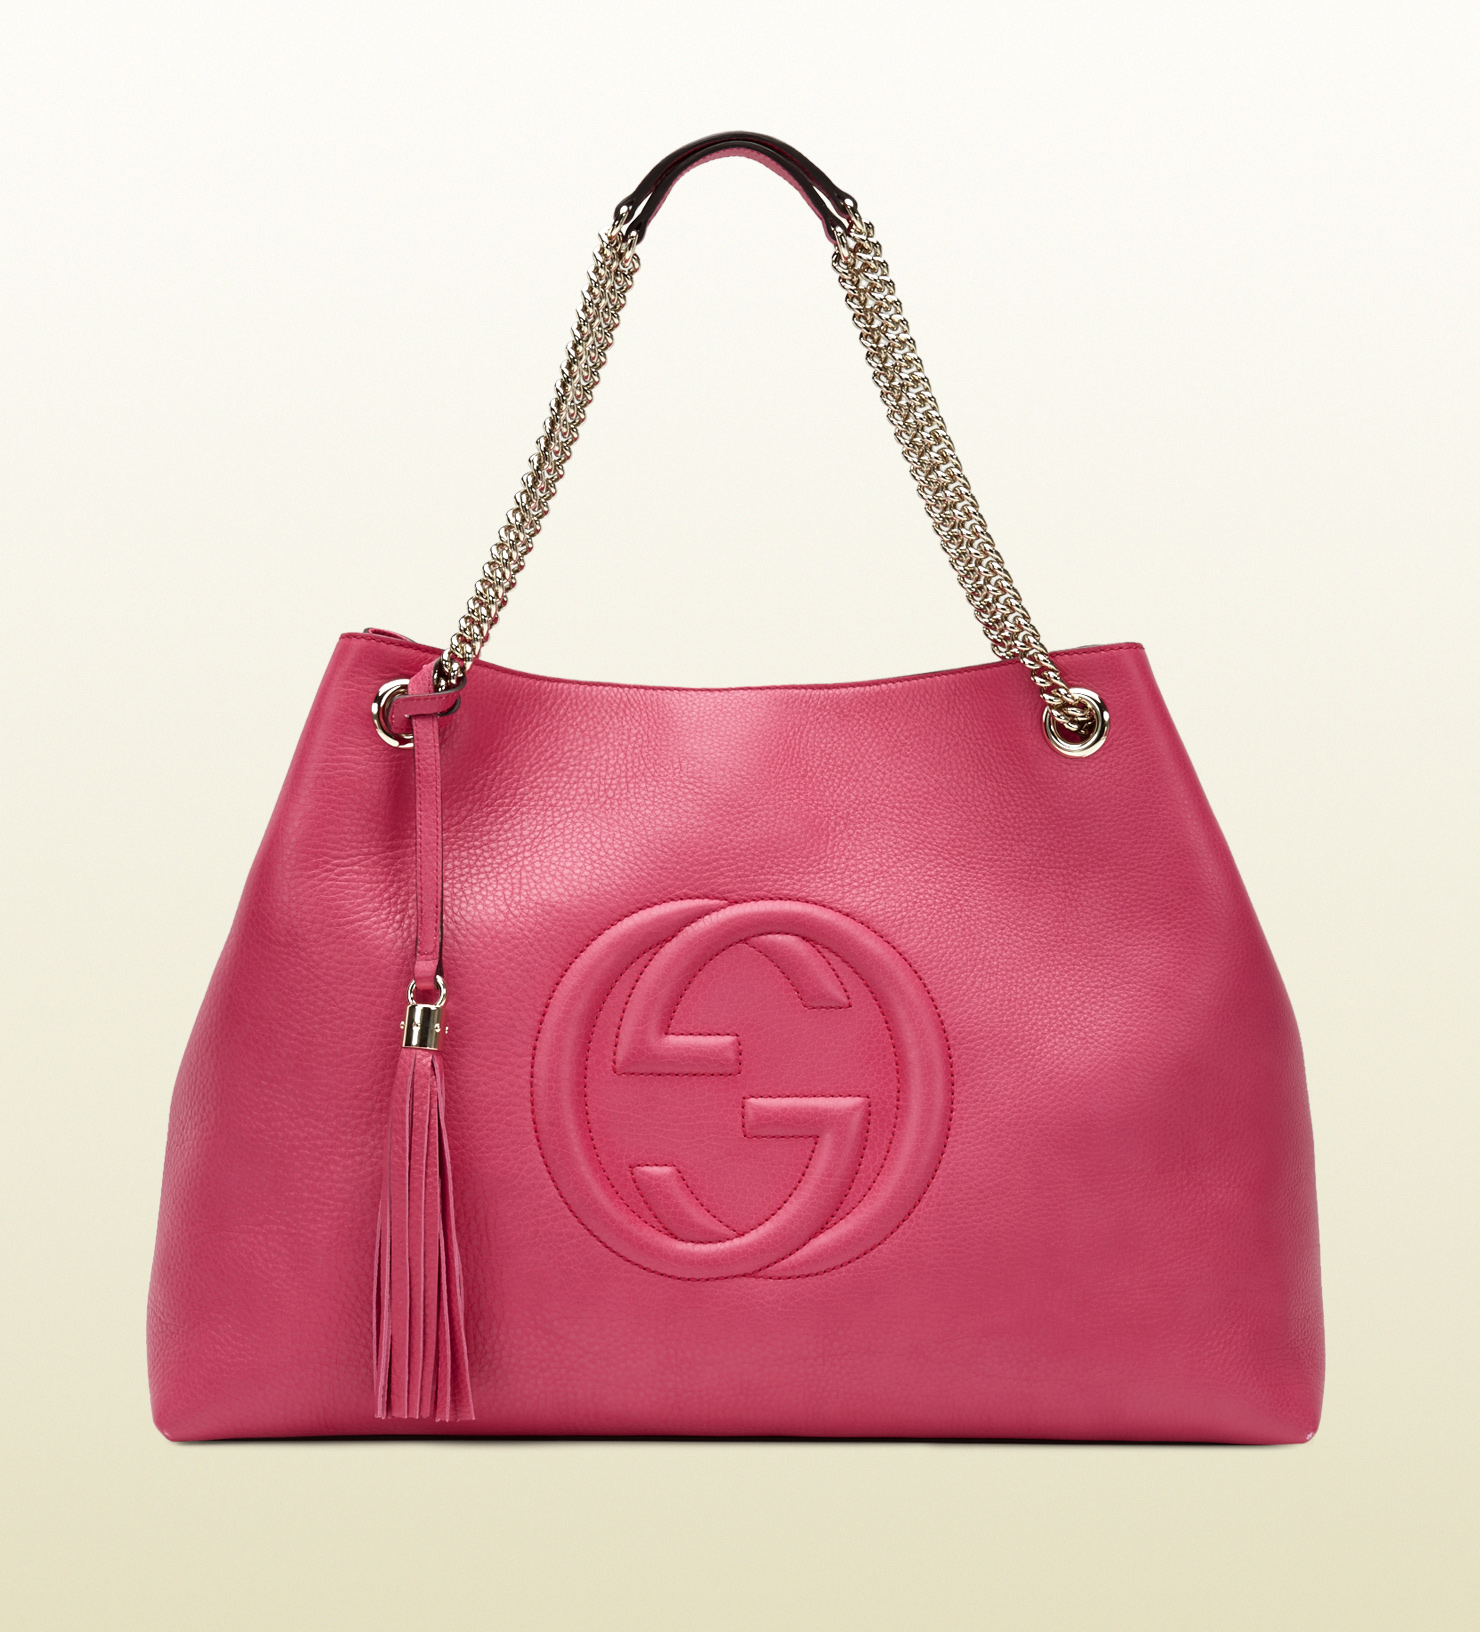 31d022f45b2acd Gucci Pink Leather Shoulder Bag | Stanford Center for Opportunity ...